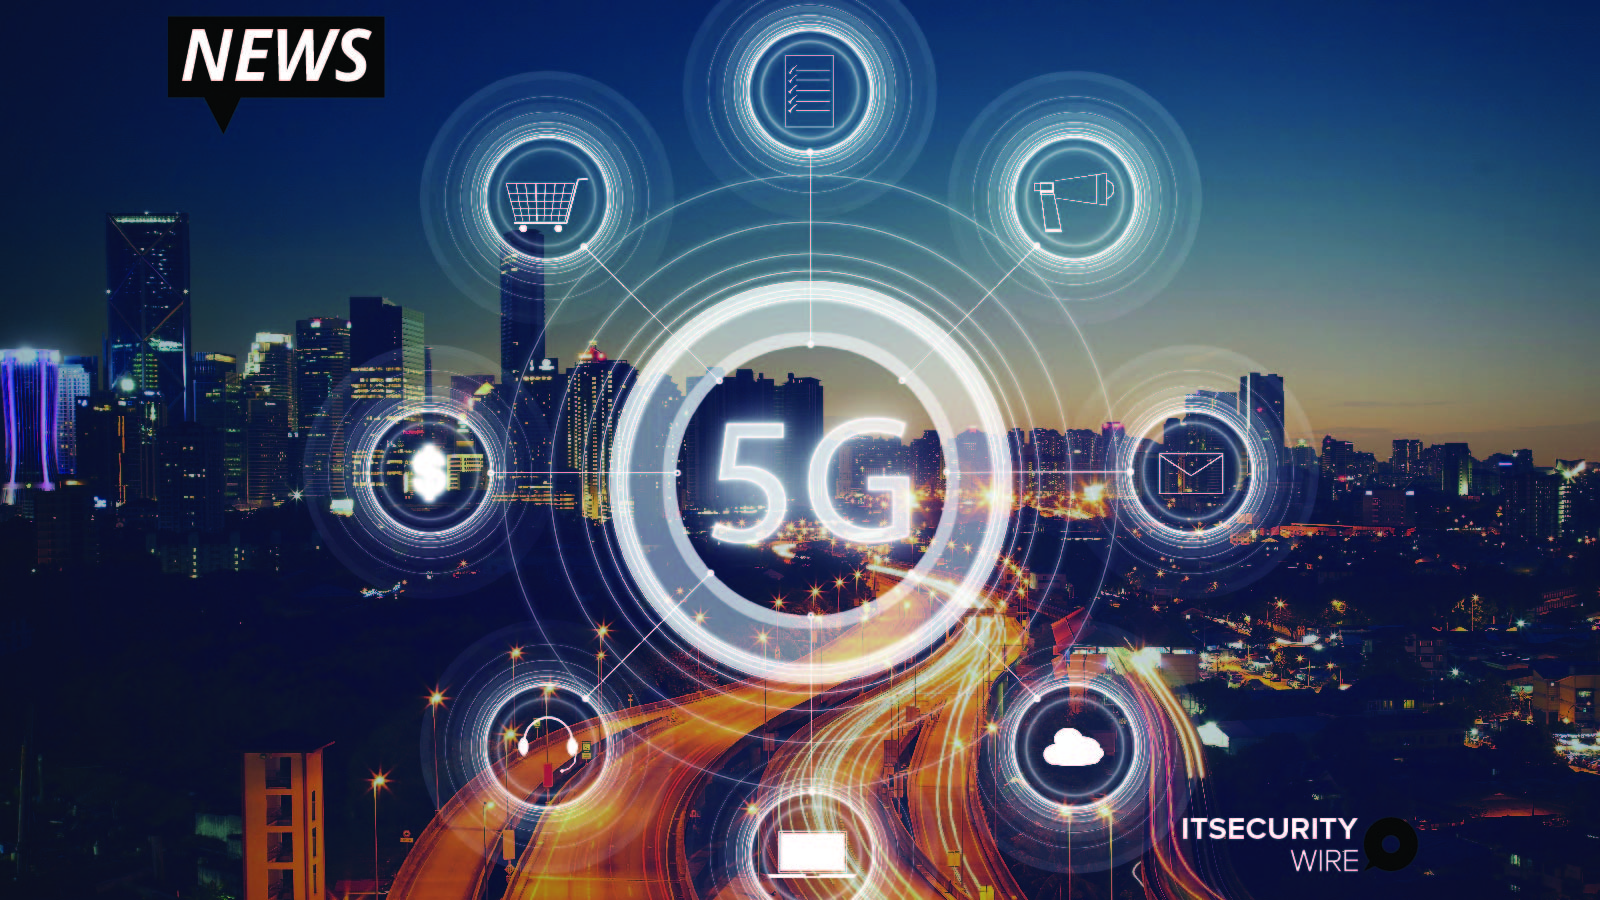 Keysight 5G Device Test and Validation Solutions Selected by China Unicom